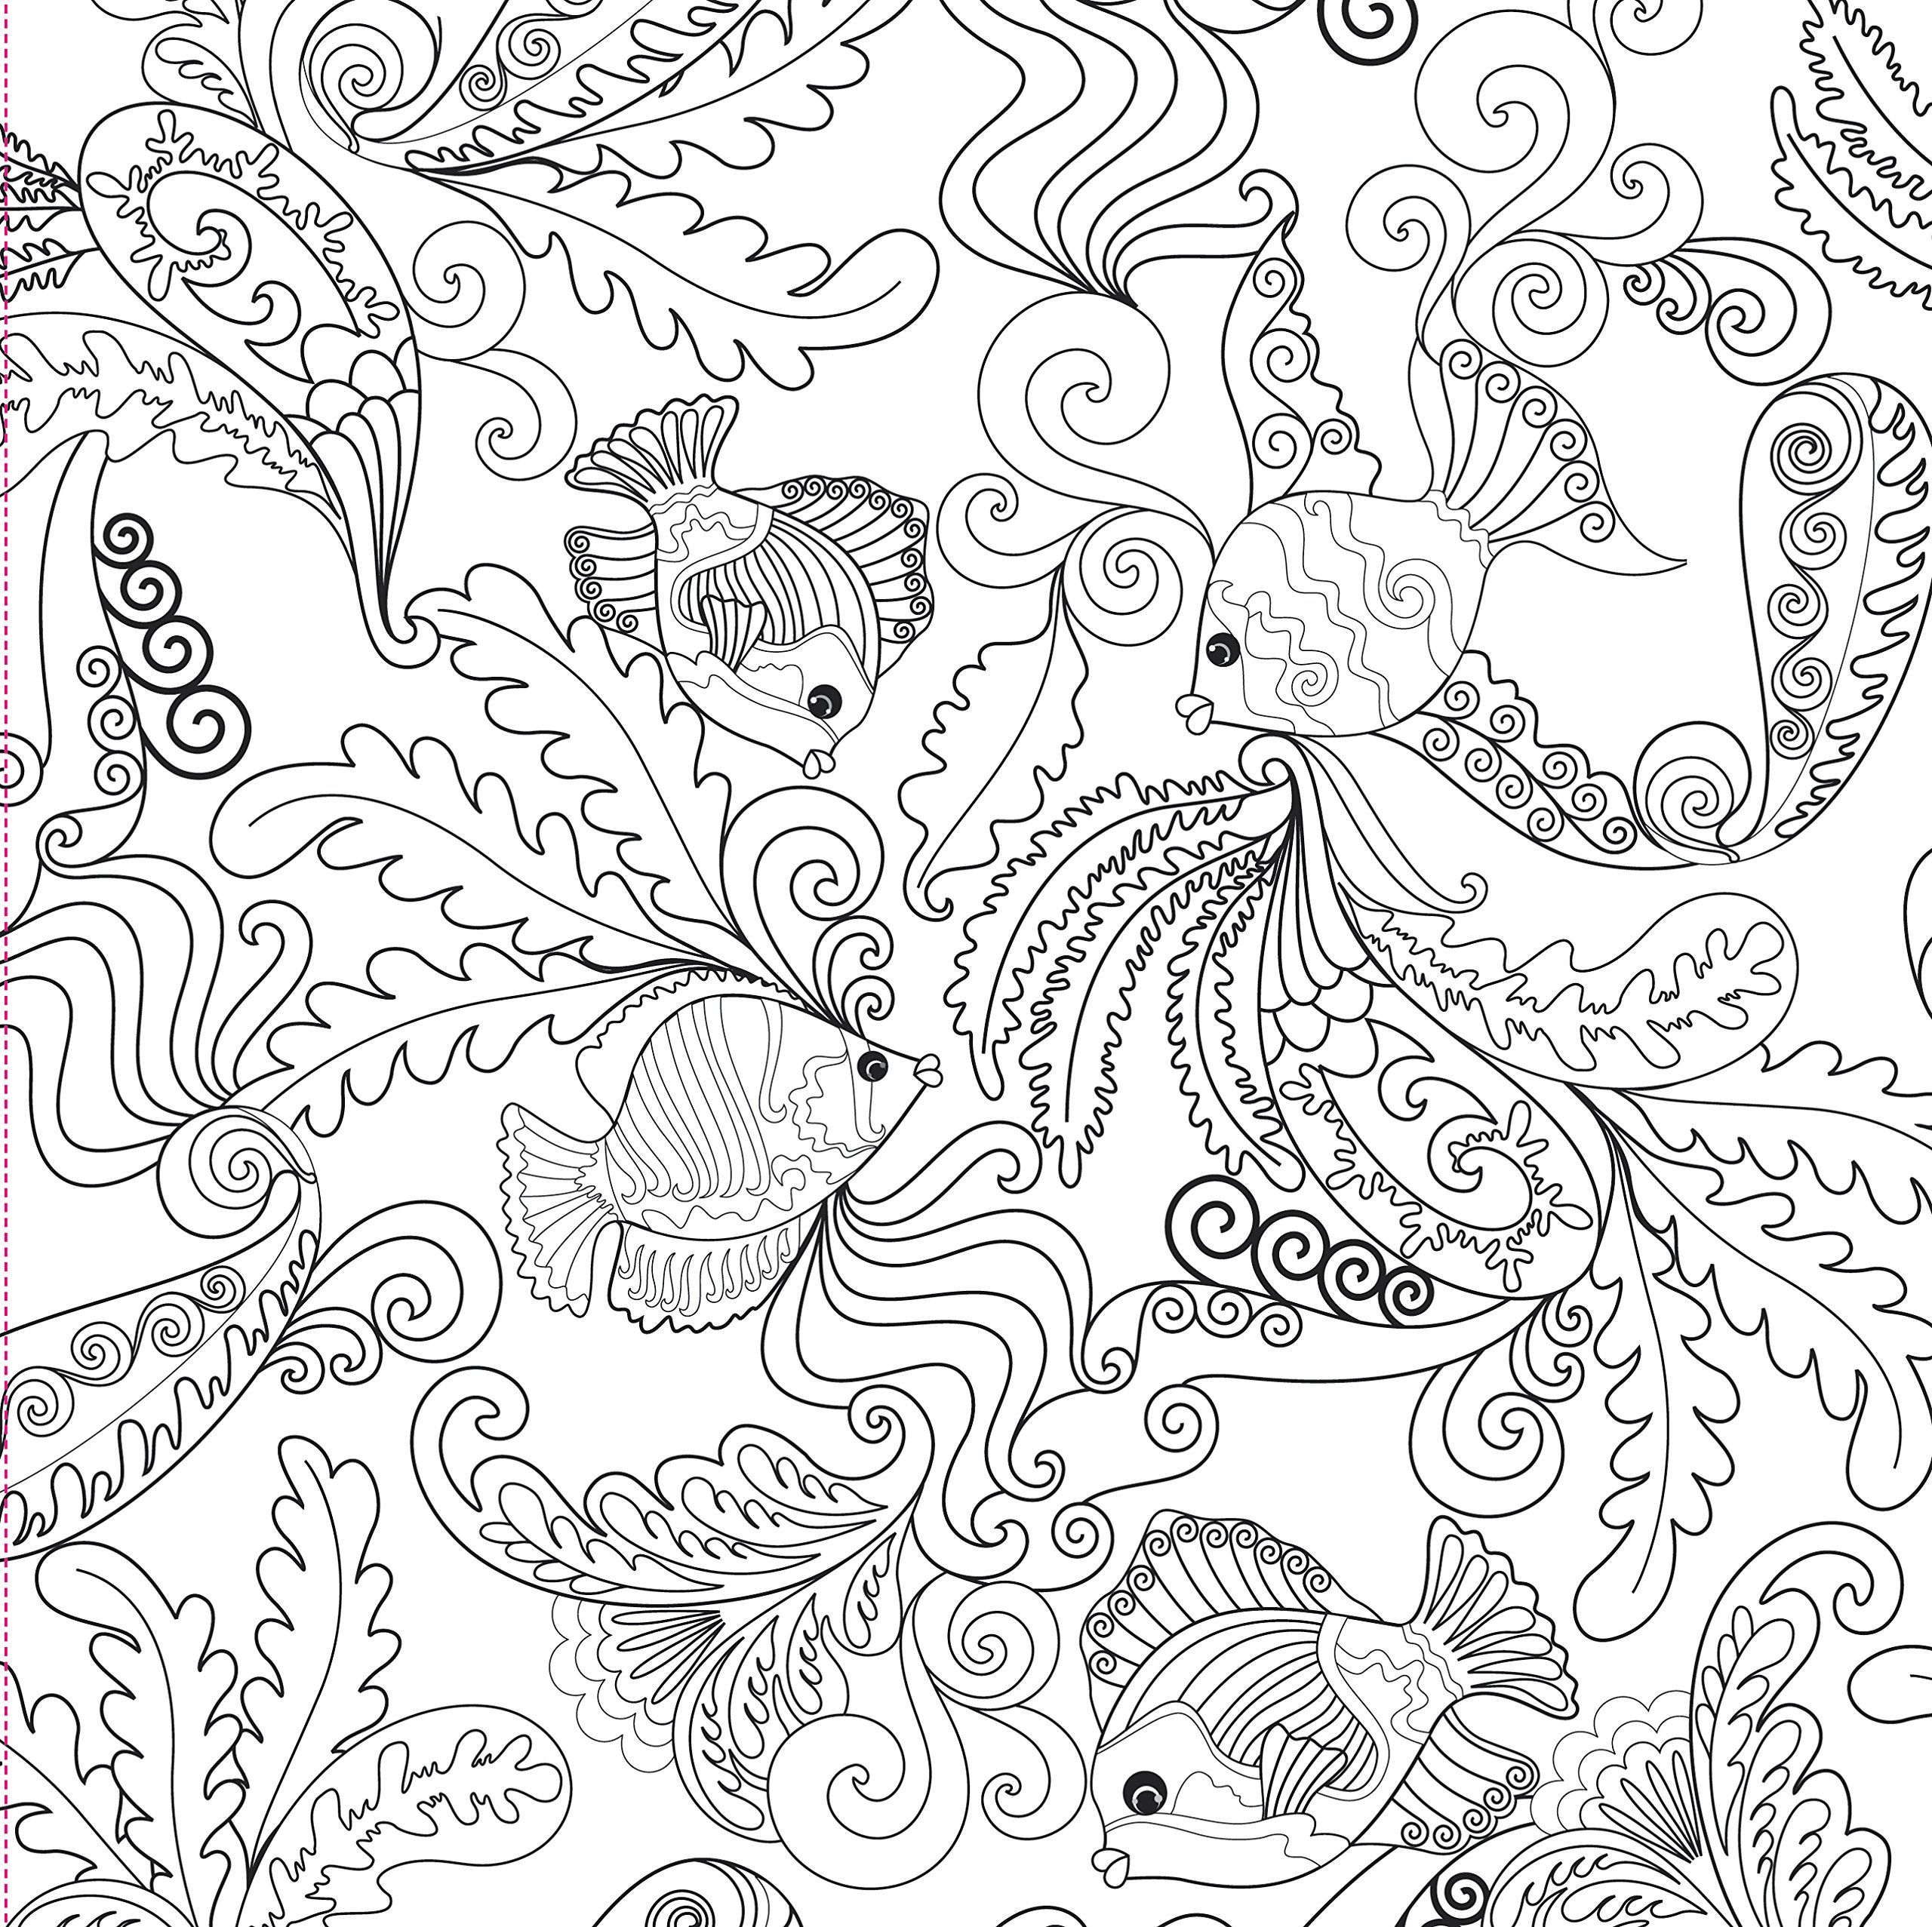 Ocean Designs Adult Coloring Book 31 Stress Relieving Studio